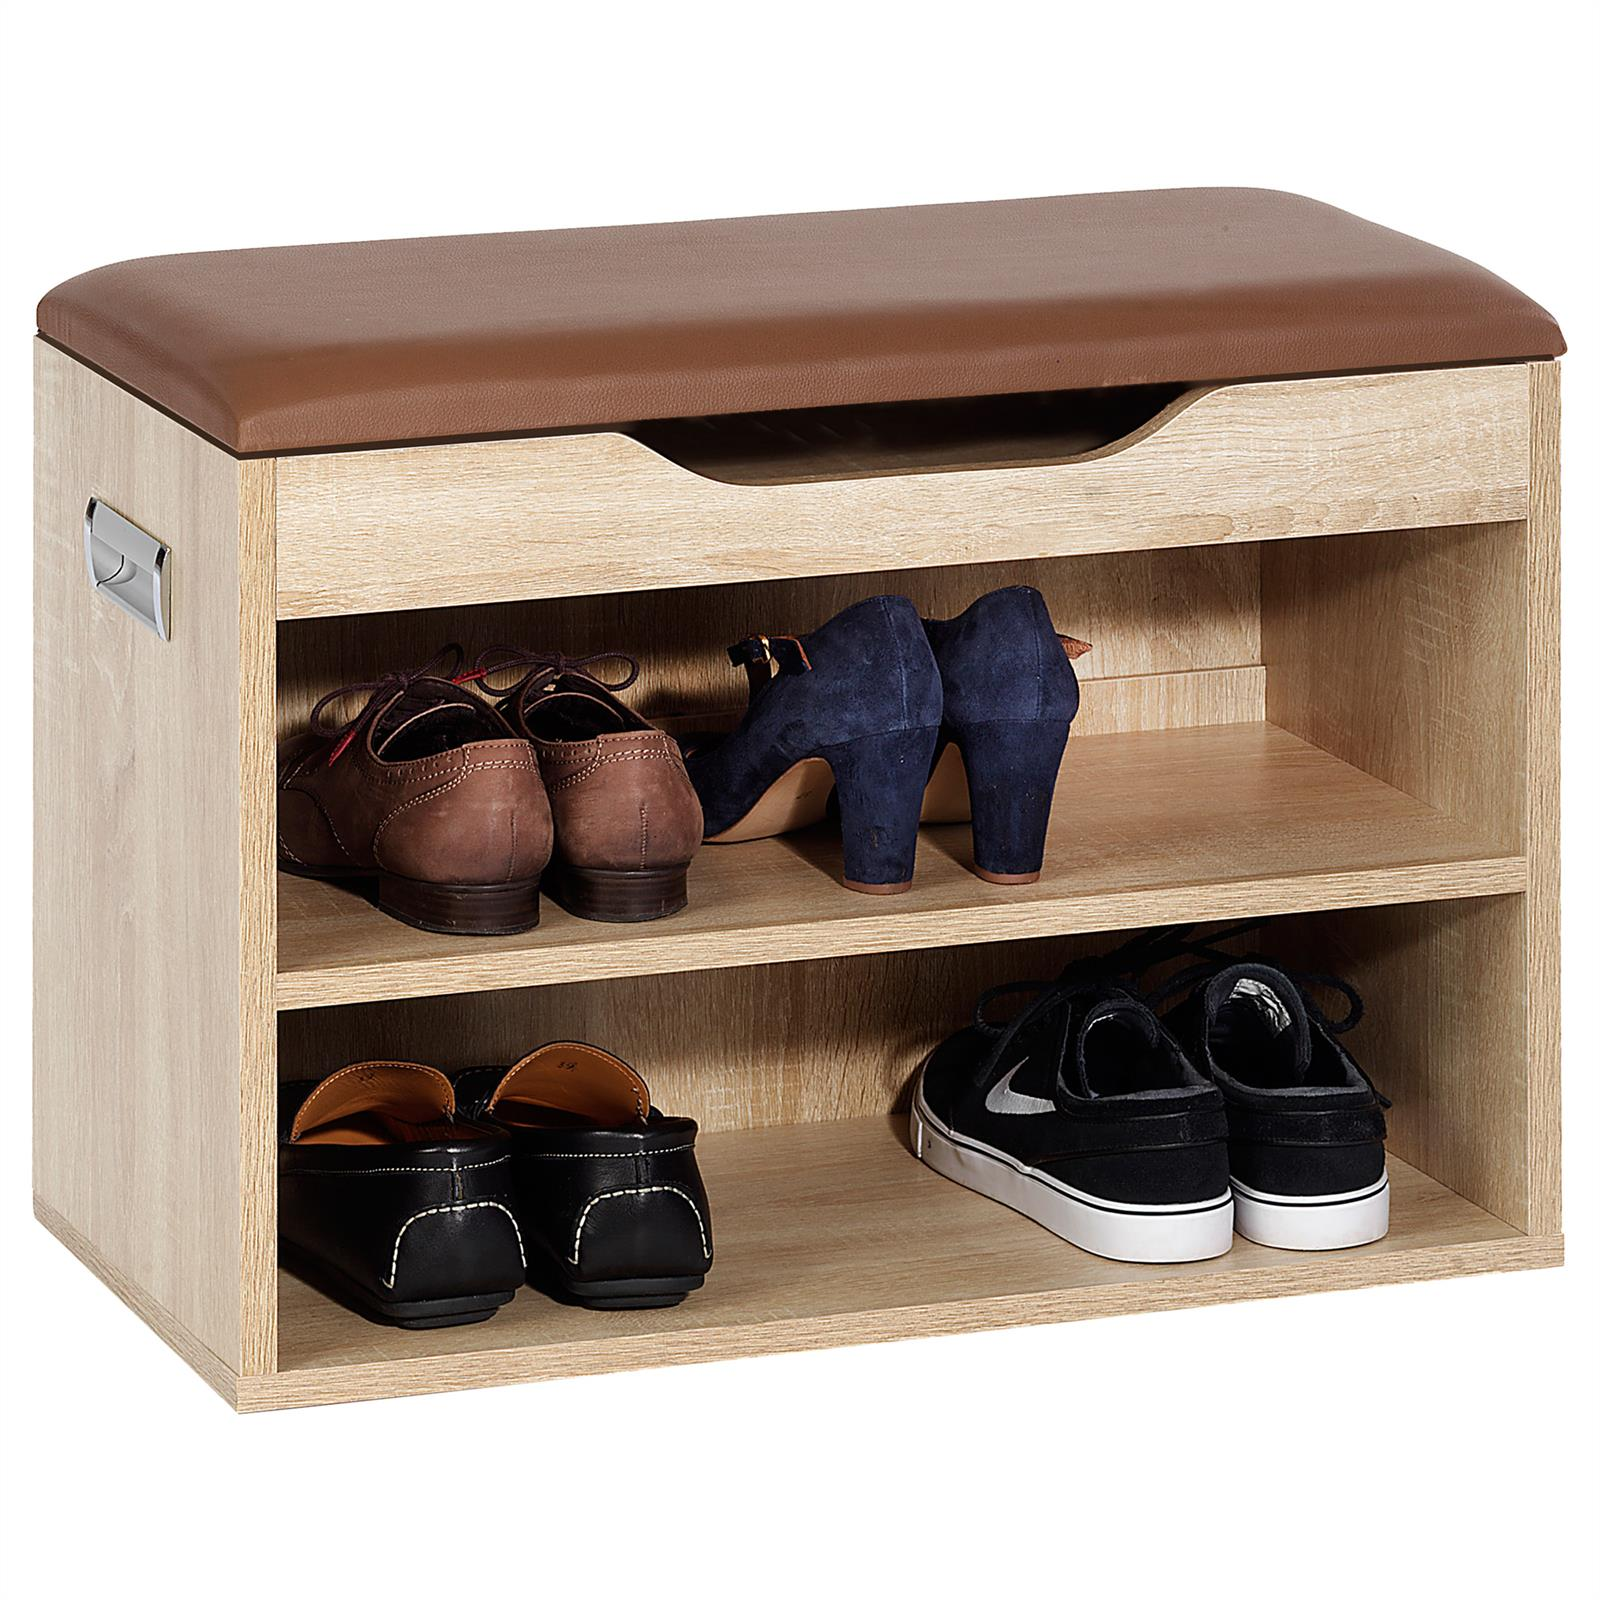 schuhbank sitzbank truhe schuhregal mit kissen 6 paar schuhe schrank ablage 60cm ebay. Black Bedroom Furniture Sets. Home Design Ideas